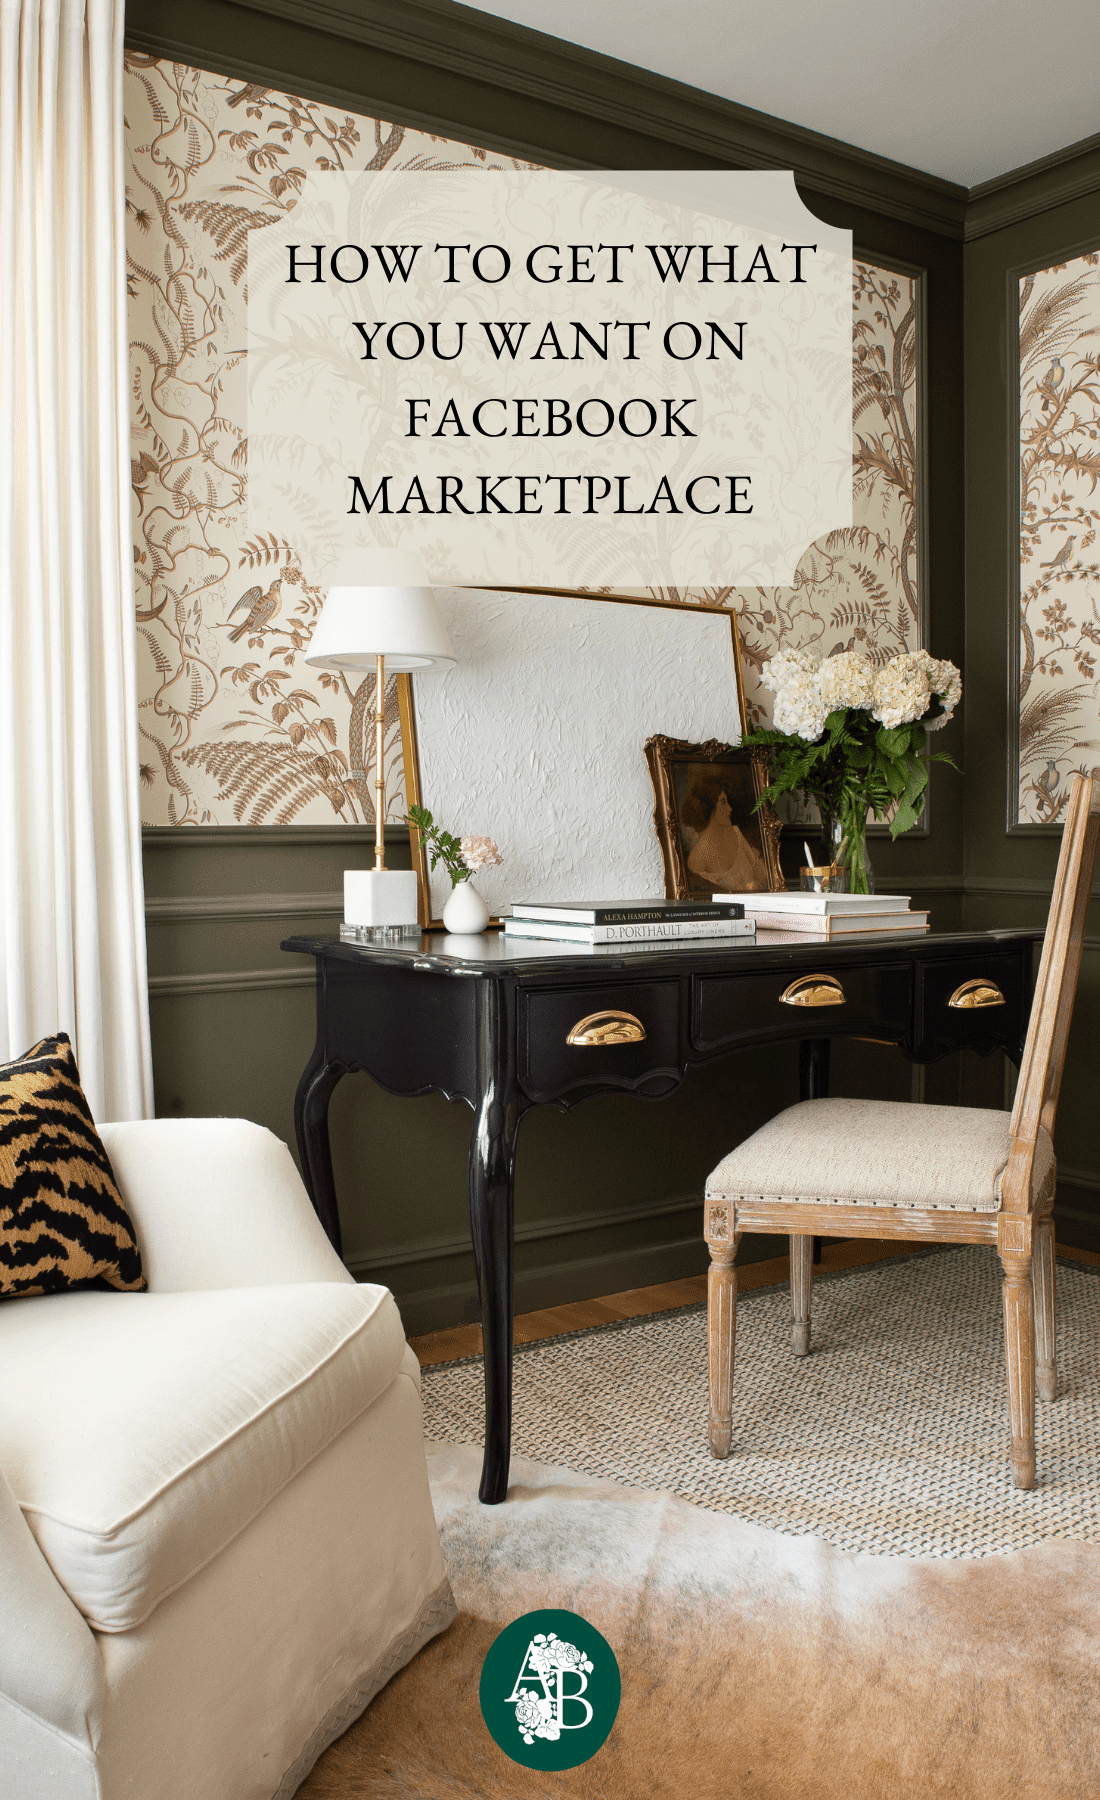 HOW-TO-SHOP-FACEBOOK-MARKETPLACE